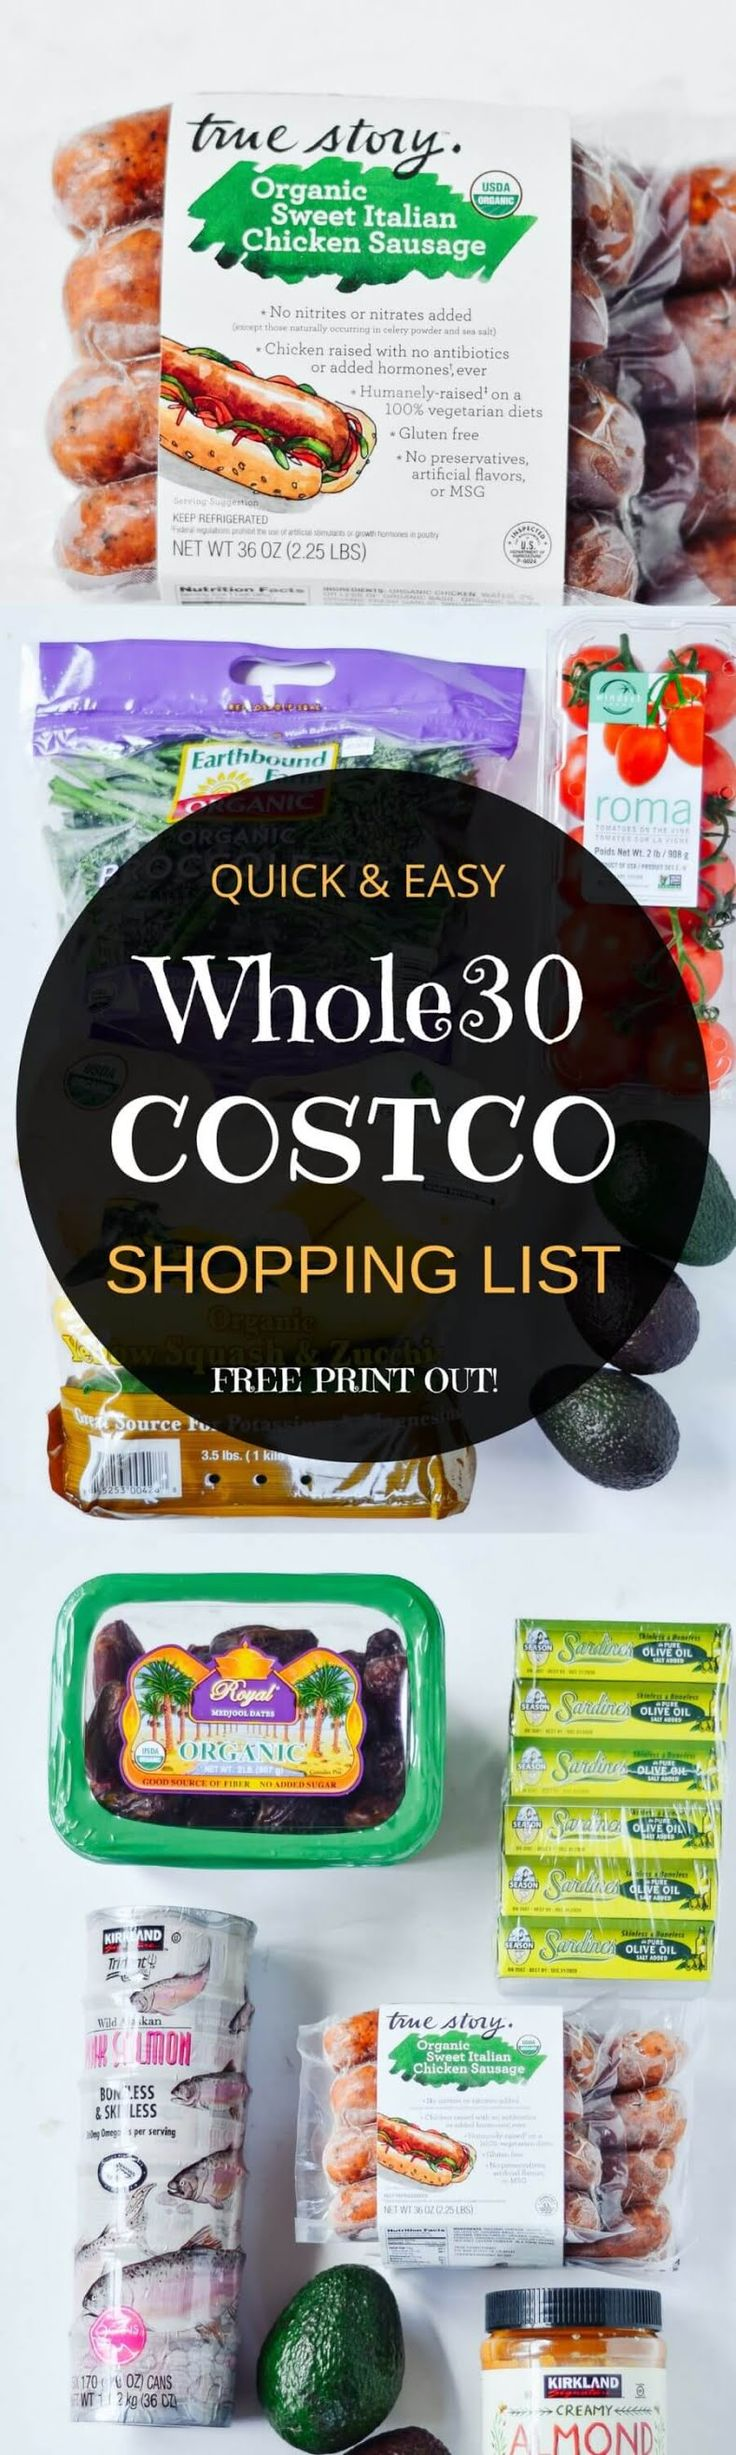 Best Whole30 and paleo shopping list!! Complete with how to read the labels guide and checkboxes for all your whole30 needs! Shop with ease! Eat like a whole30 king! Free shopping list & shopping guide printout! Whole30 shopping list. Whole30 Costco shopp http://www.skinnymefat.com/paleo-diet/